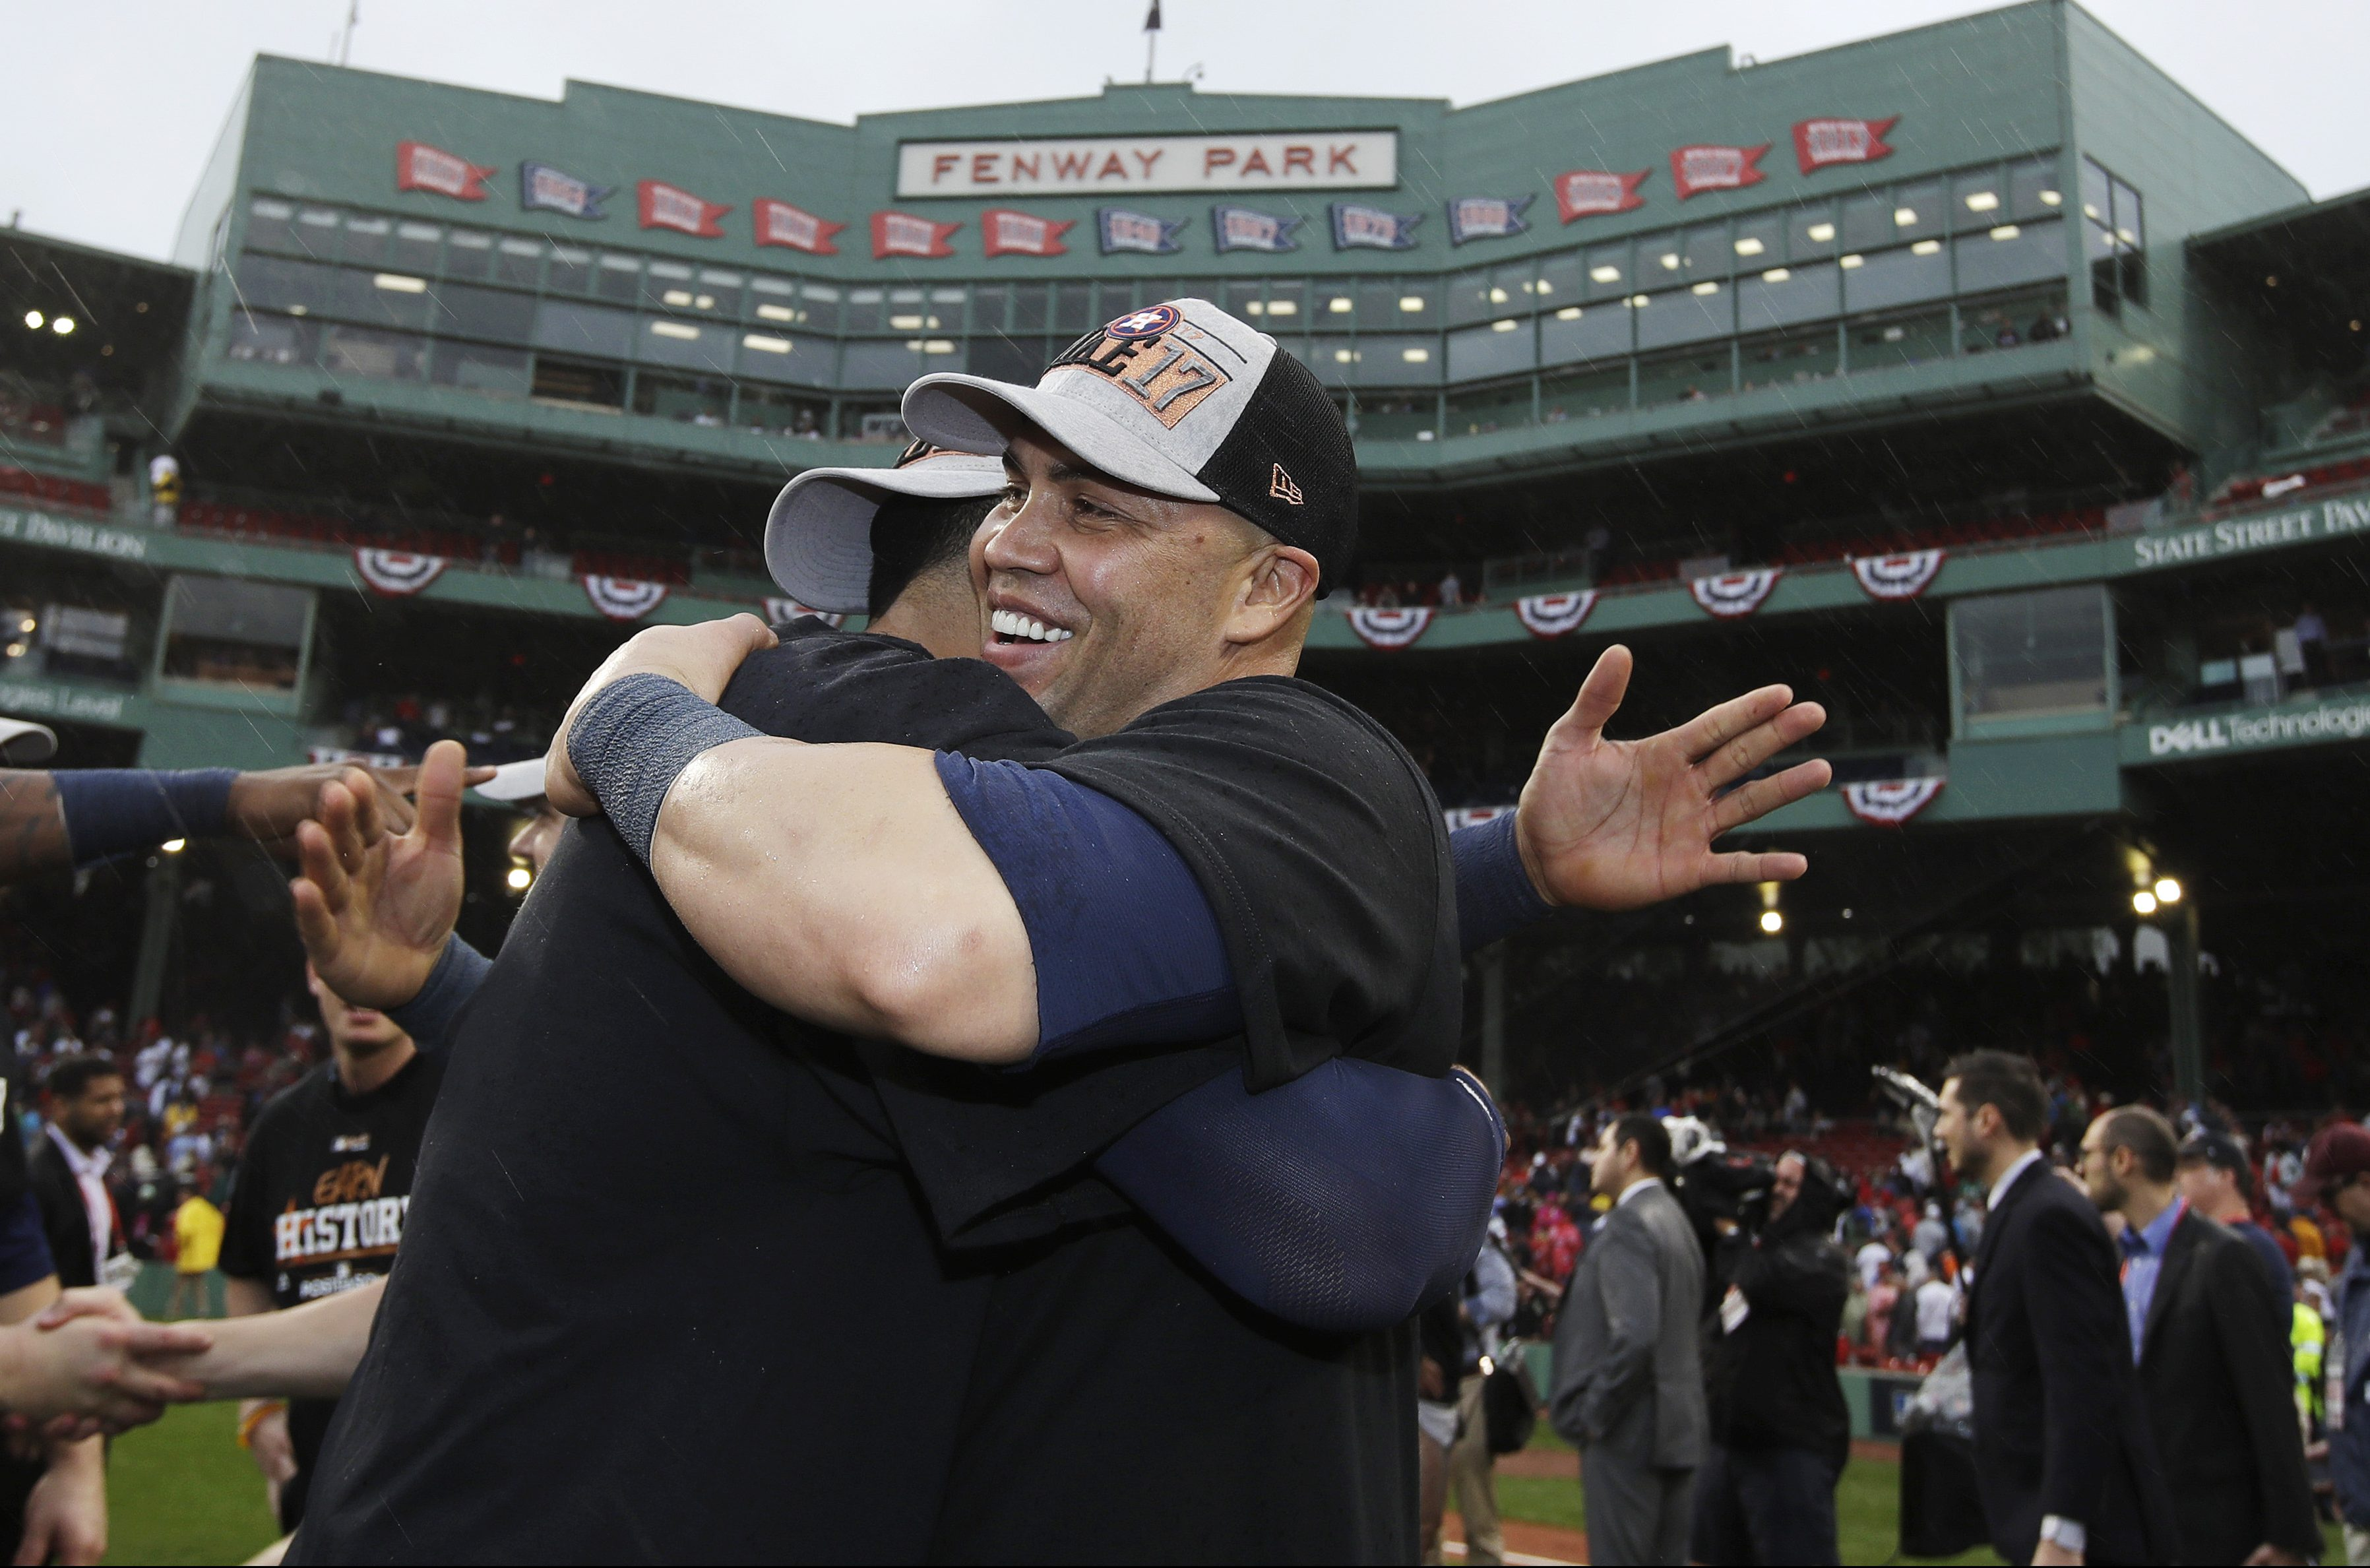 Houston Astros´ Carlos Beltran celebrates on the field after the Astros eliminated the Boston Red Sox with a 5-4 victory in Game 4 of baseball´s American League Division Series, Monday, Oct. 9, 2017, in Boston. (AP Photo/Charles Krupa)